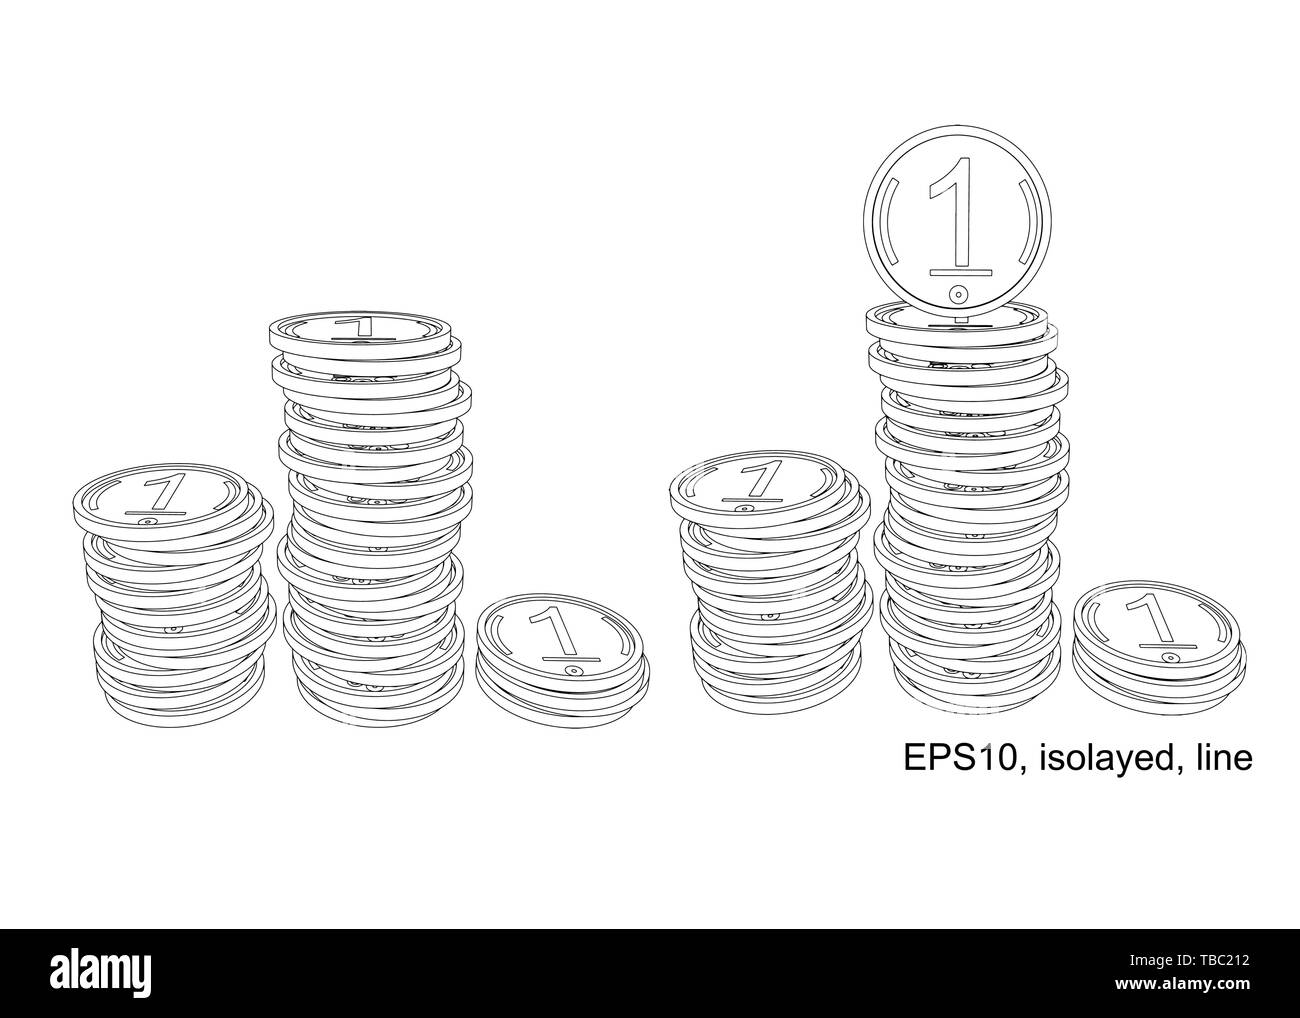 Podium of stacks of coins. Many gold coins in towers. Outline. - Stock Image